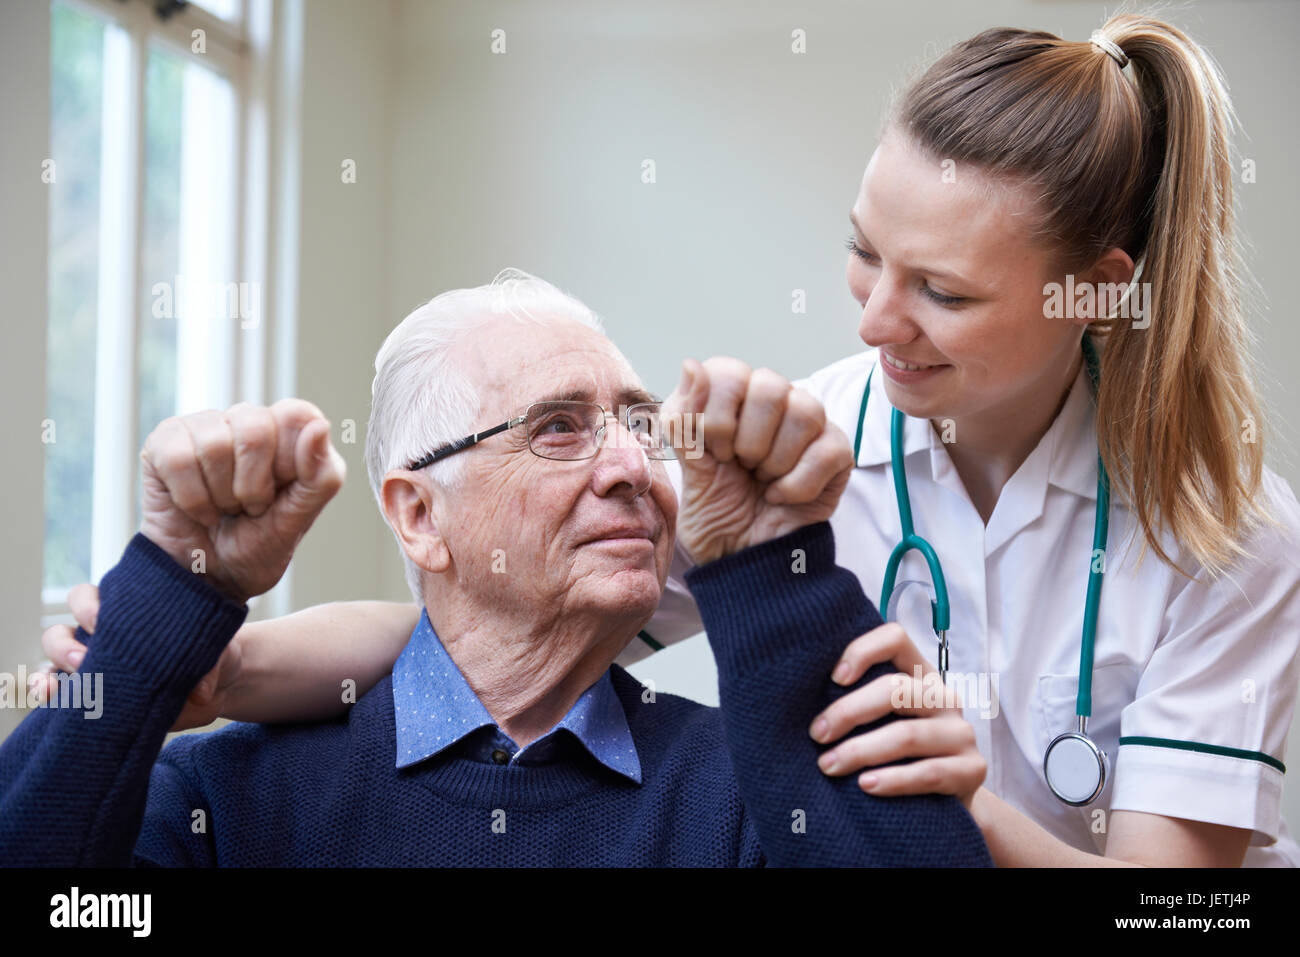 Nurse Assessing Stroke Victim By Raising Arms - Stock Image